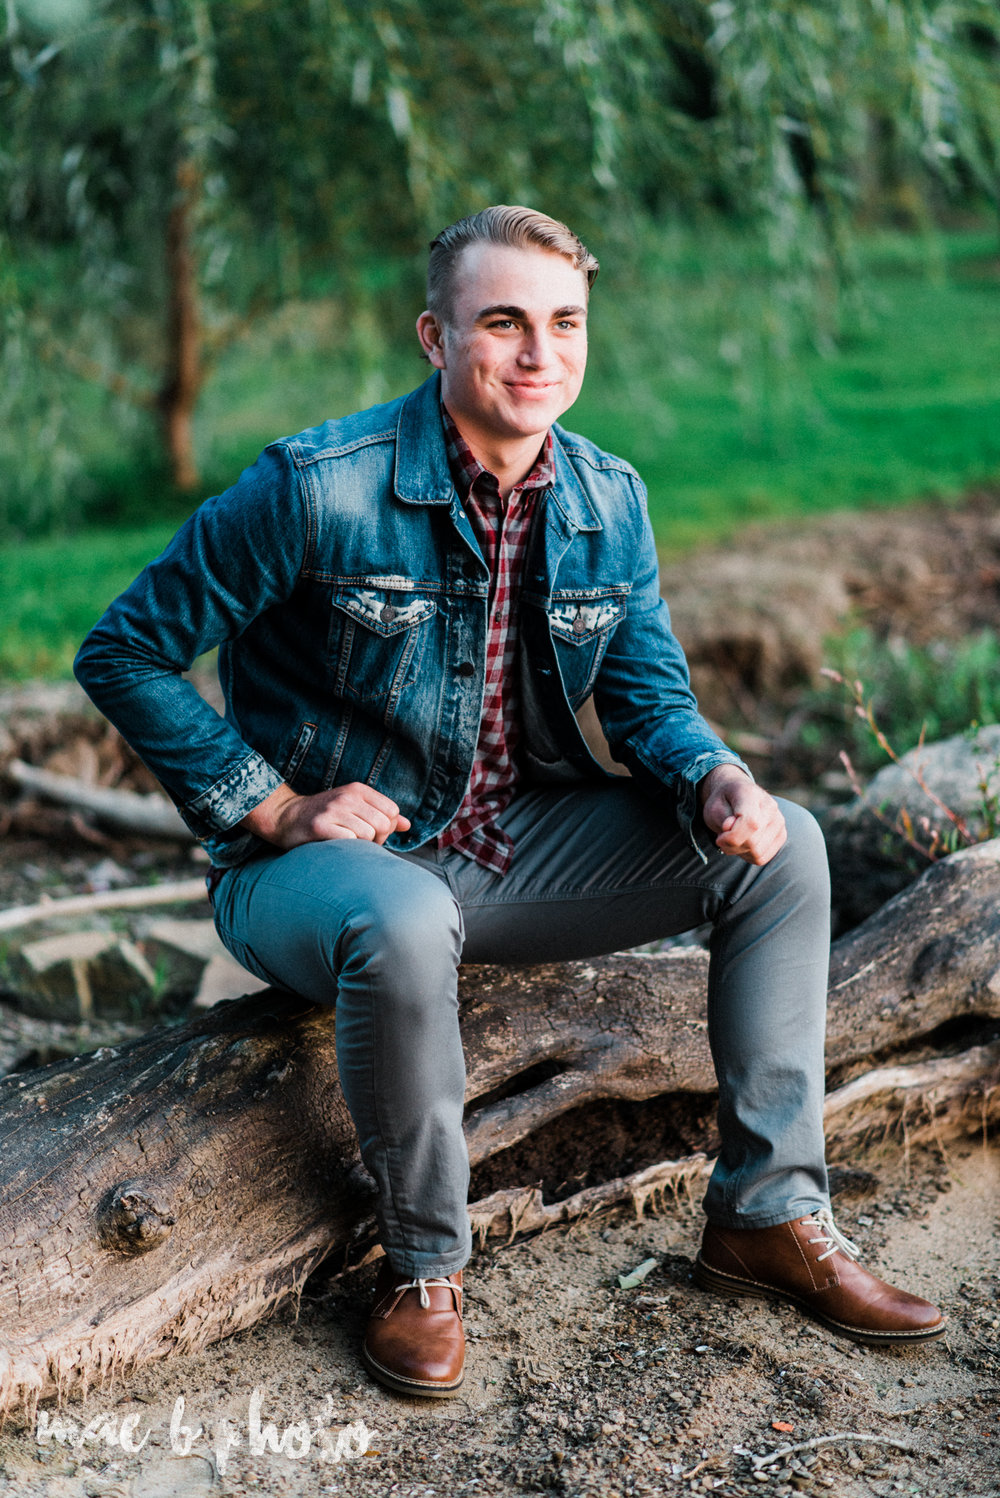 chris's fall senior session at mosquito lake in mecca ohio photographed by youngstown wedding photographer mae b photo-36.jpg